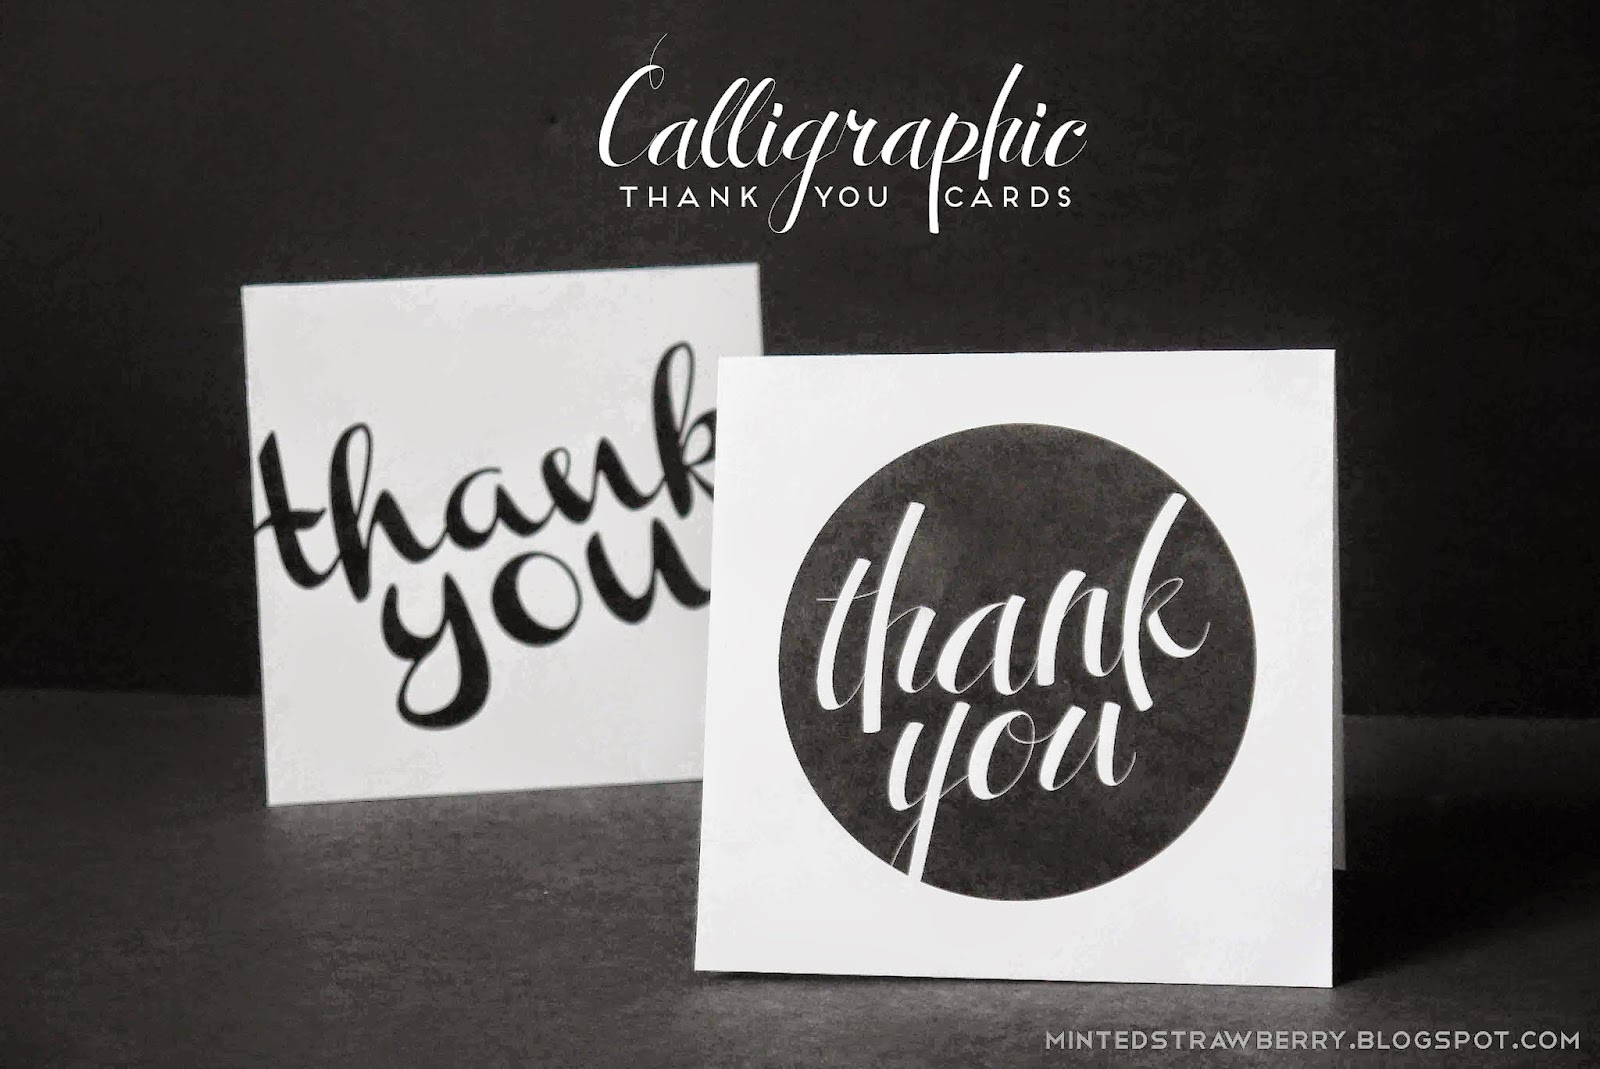 free printable: calligraphic thank you cards - minted strawberry